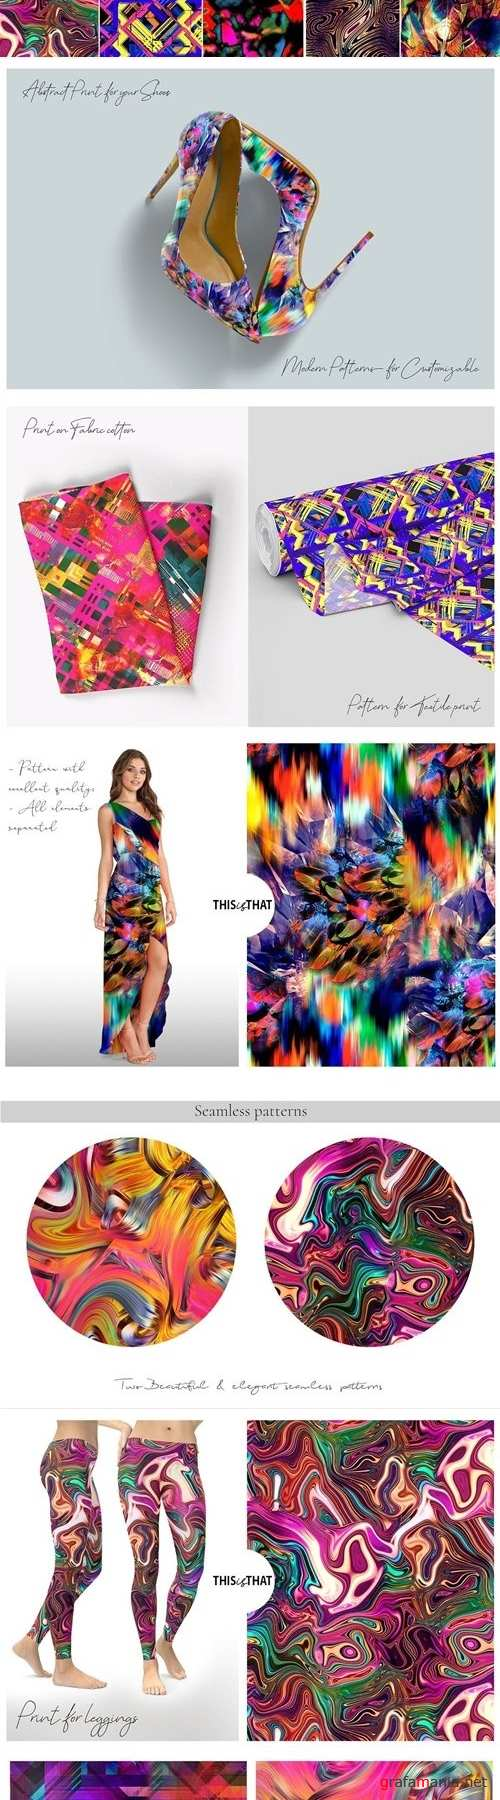 Abstract Prints - 3499745